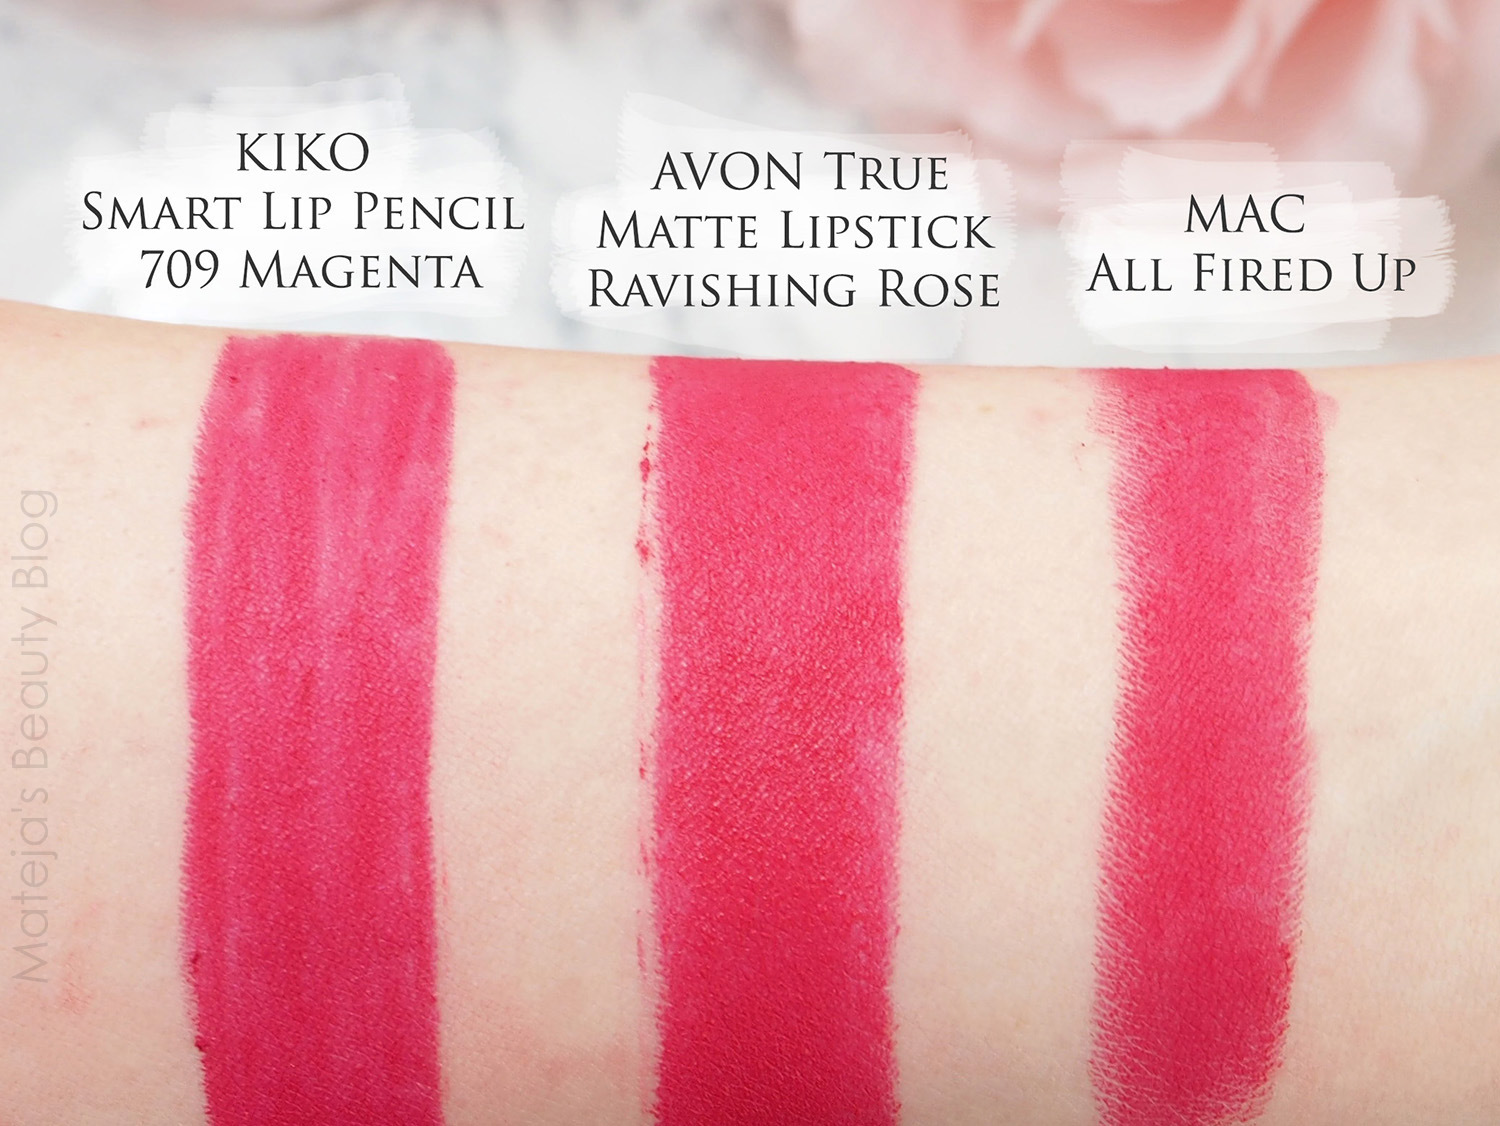 Super 20 Mac lipstick swatched plus their dupes - Mateja's Beauty Blog NM29